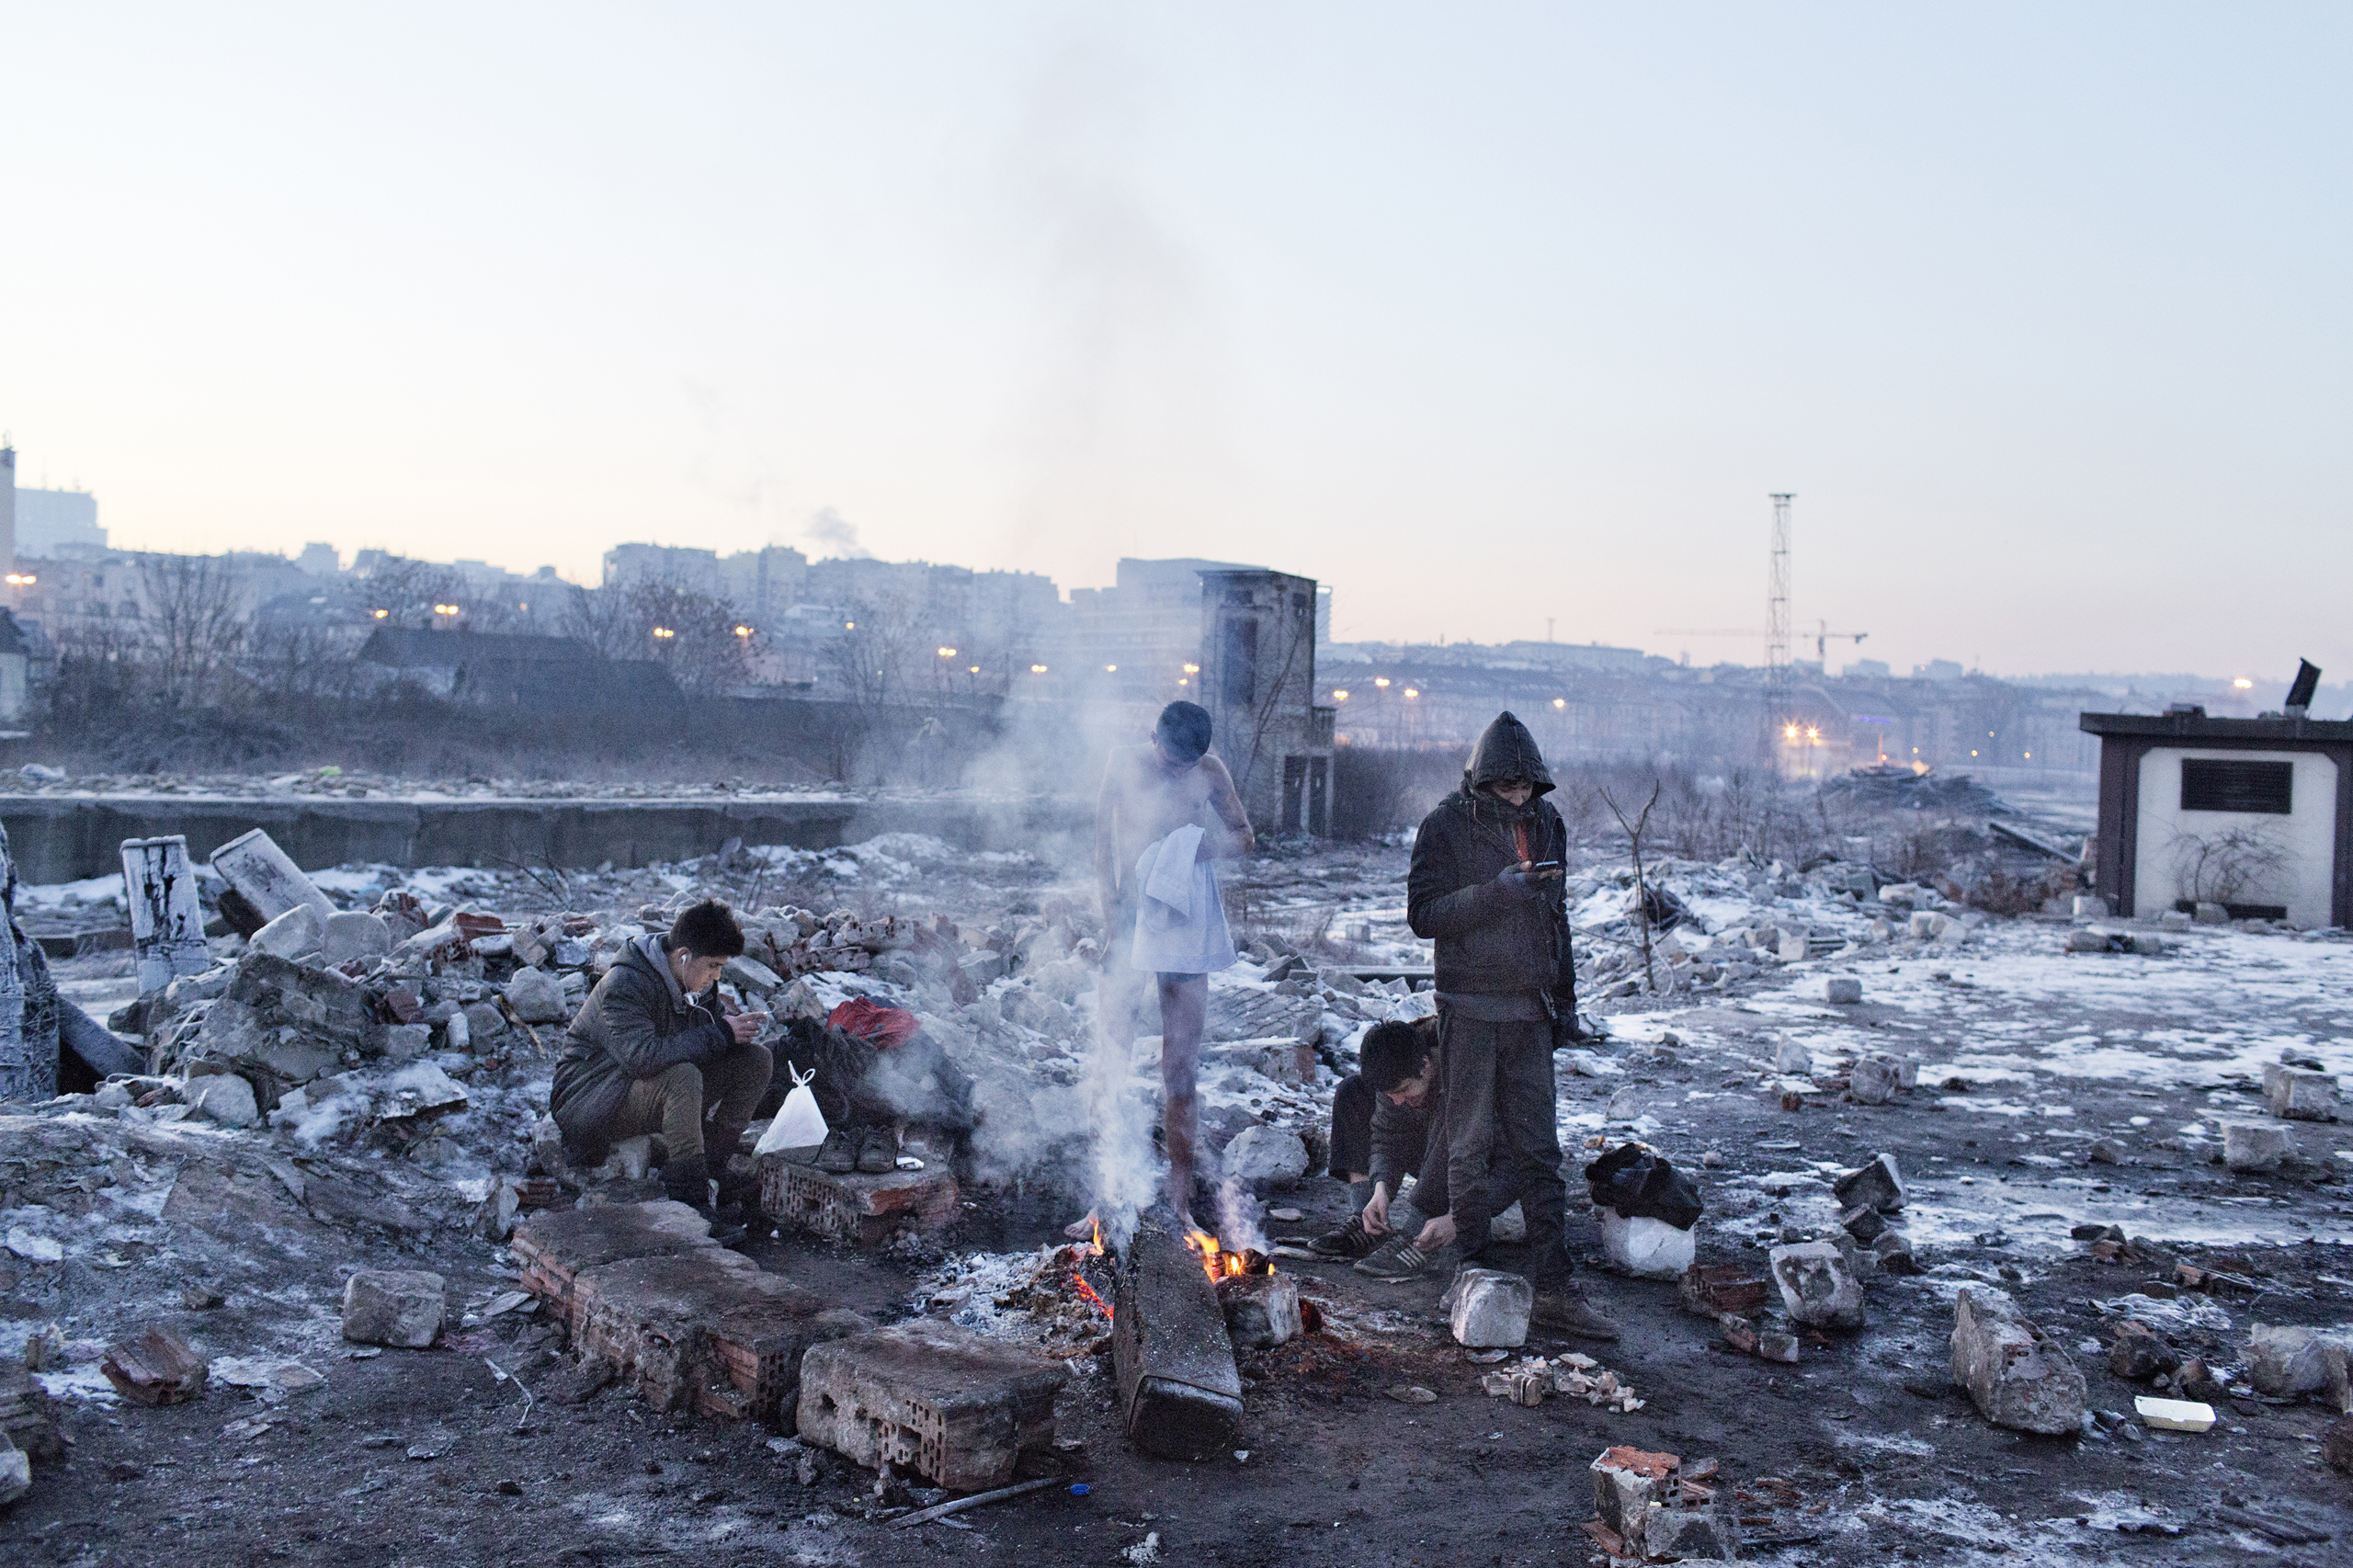 A group of unaccompanied minors from Afghanistan, including a disabled boy,  keep warm by a fire near the train station of Belgrade, Serbia, Jan 15, 2017.